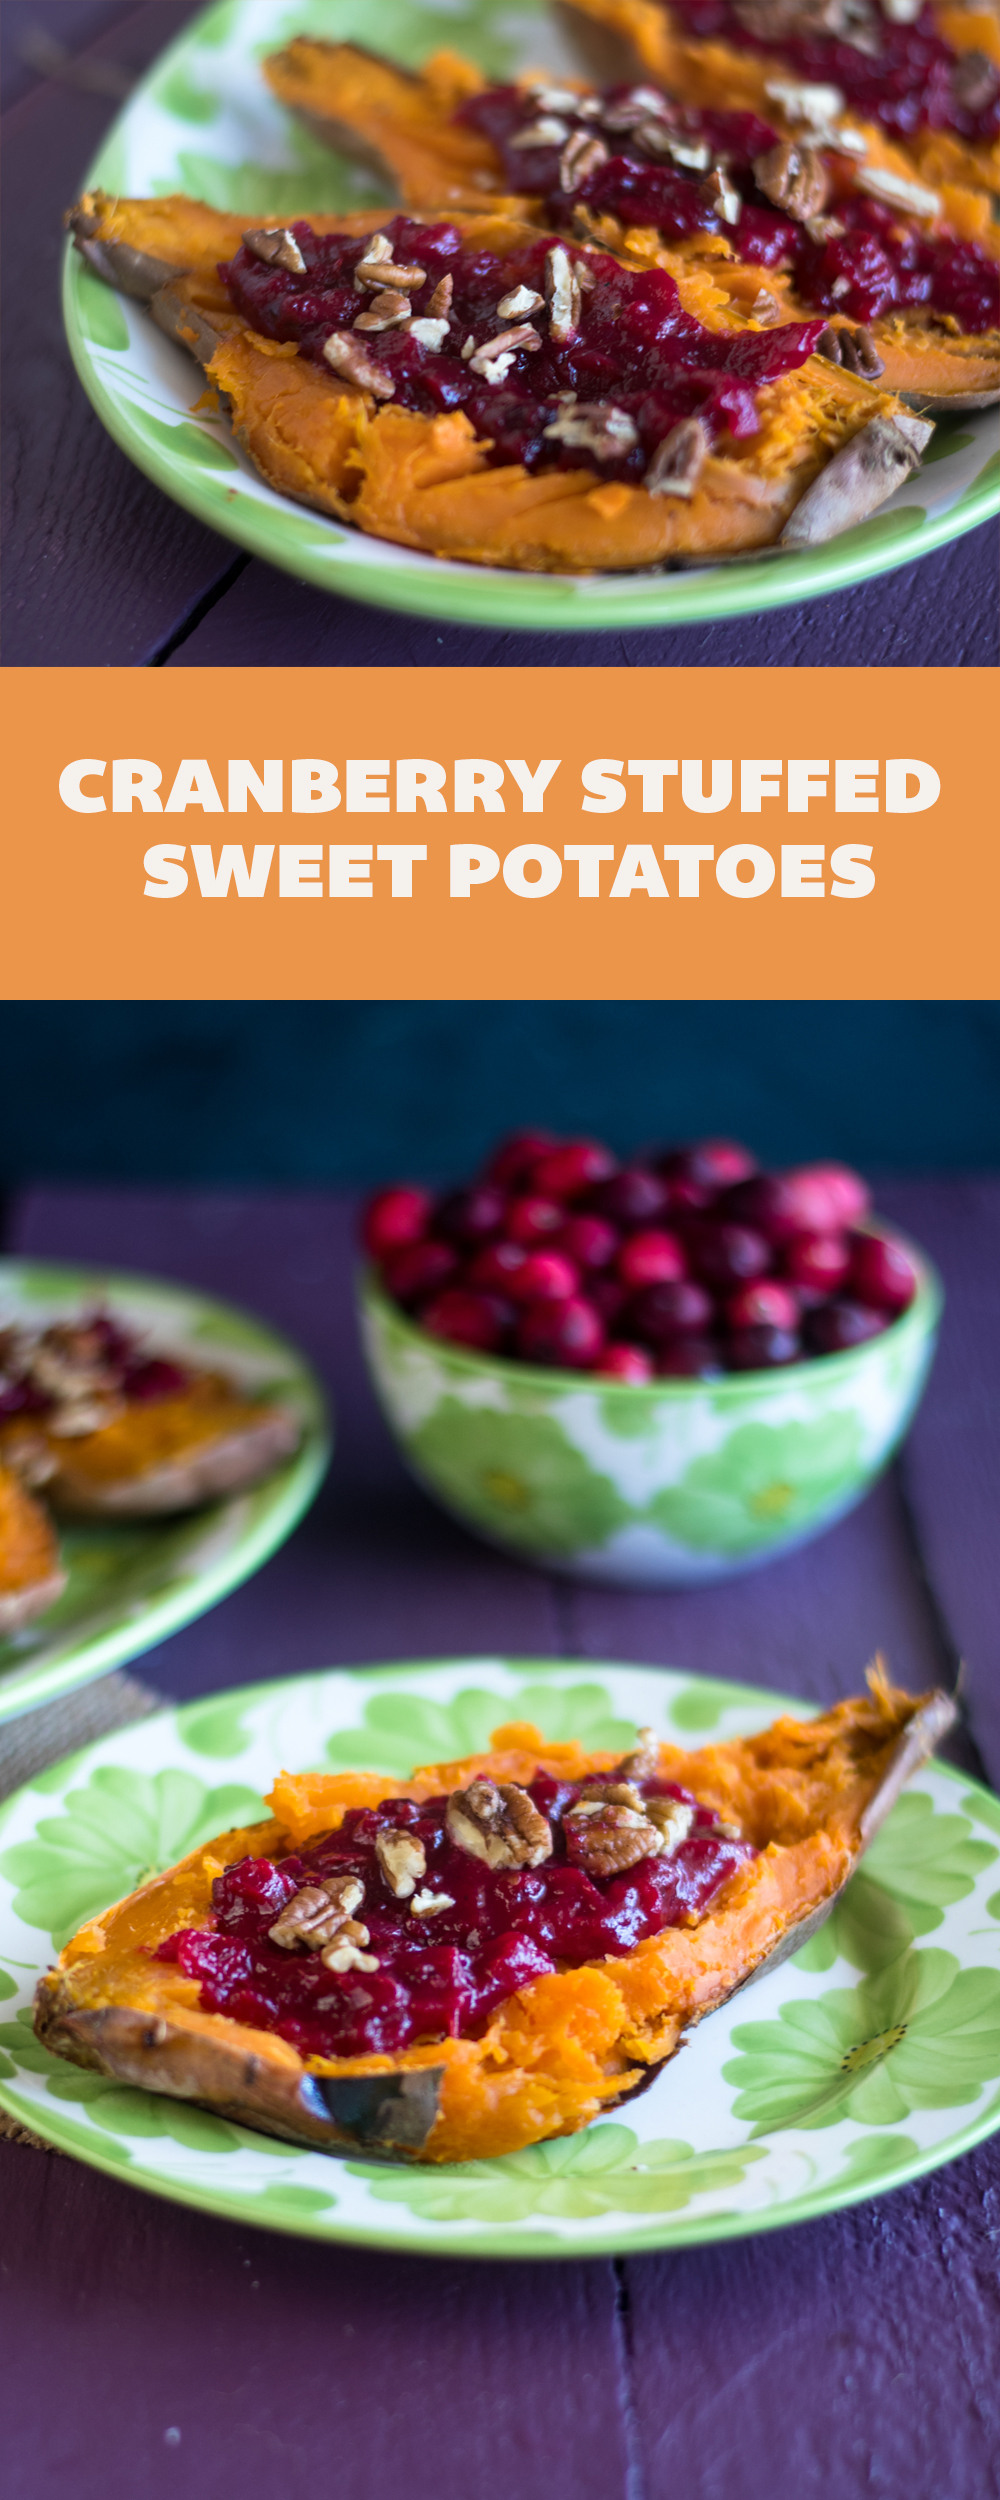 Cranberry Stuffed Sweet Potatoes combine two holiday side dishes in one!  #vegan #thanksgiving #fall